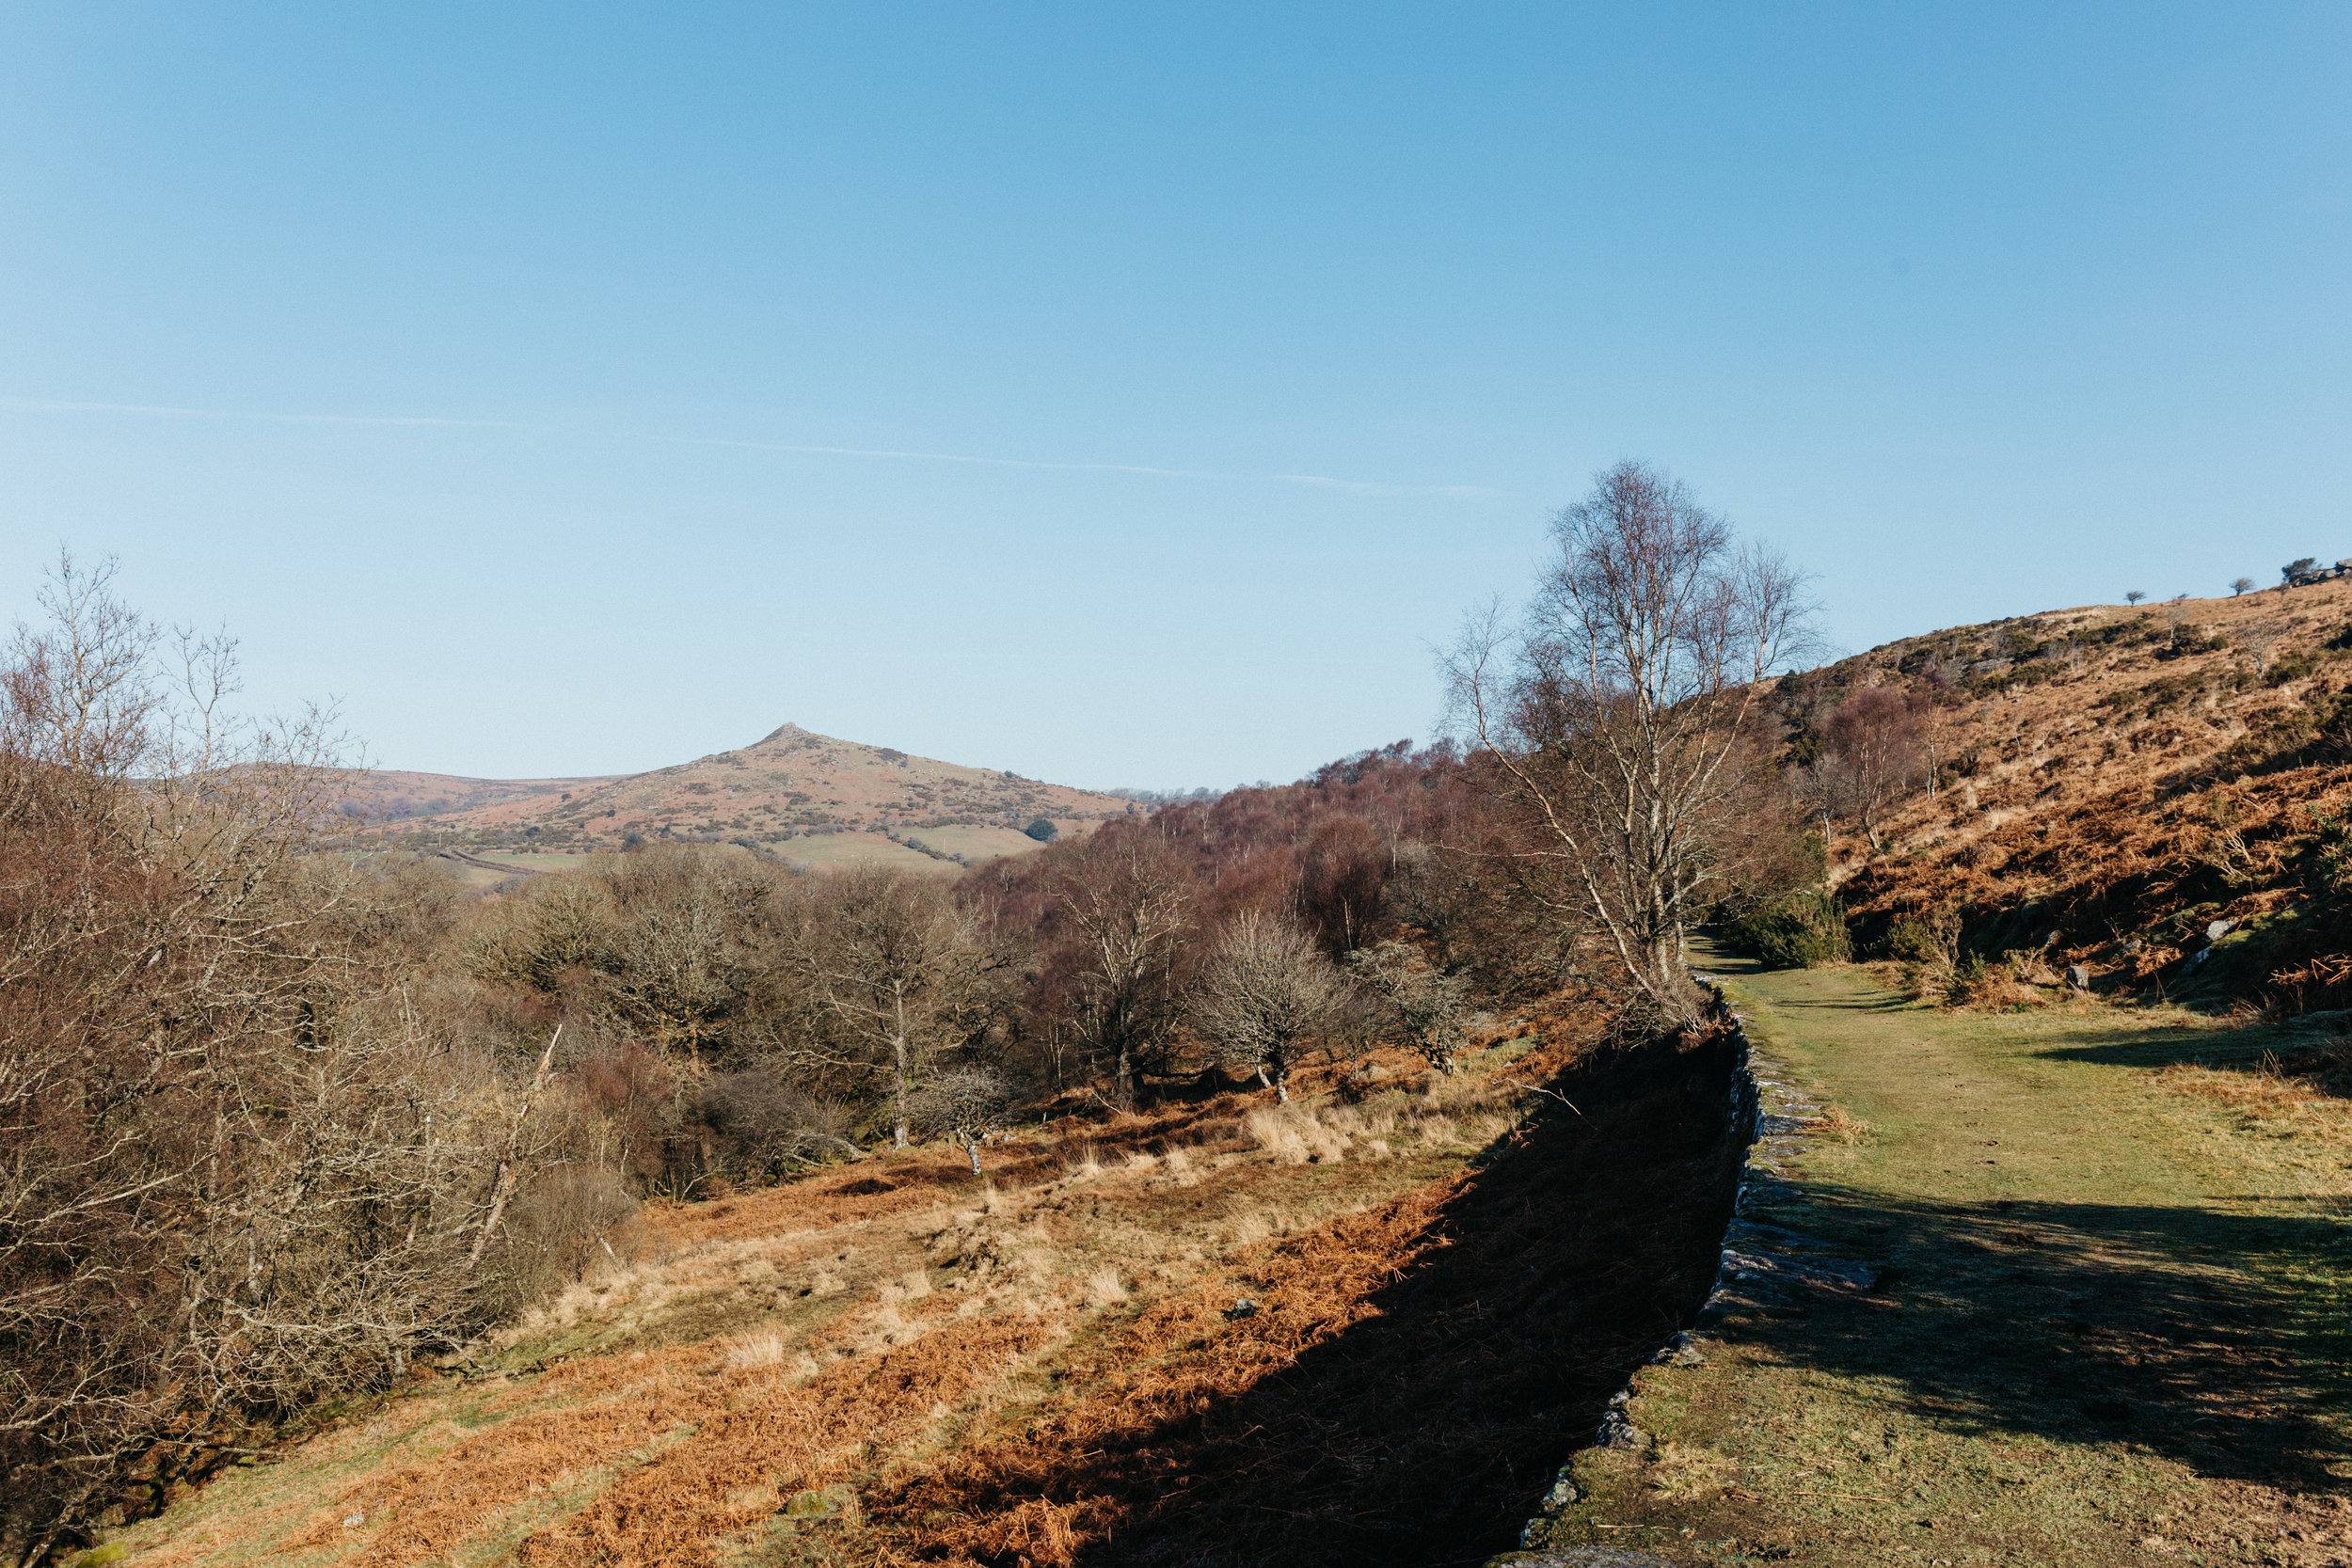 3. Walk along the well-marked track as views open up on the valley